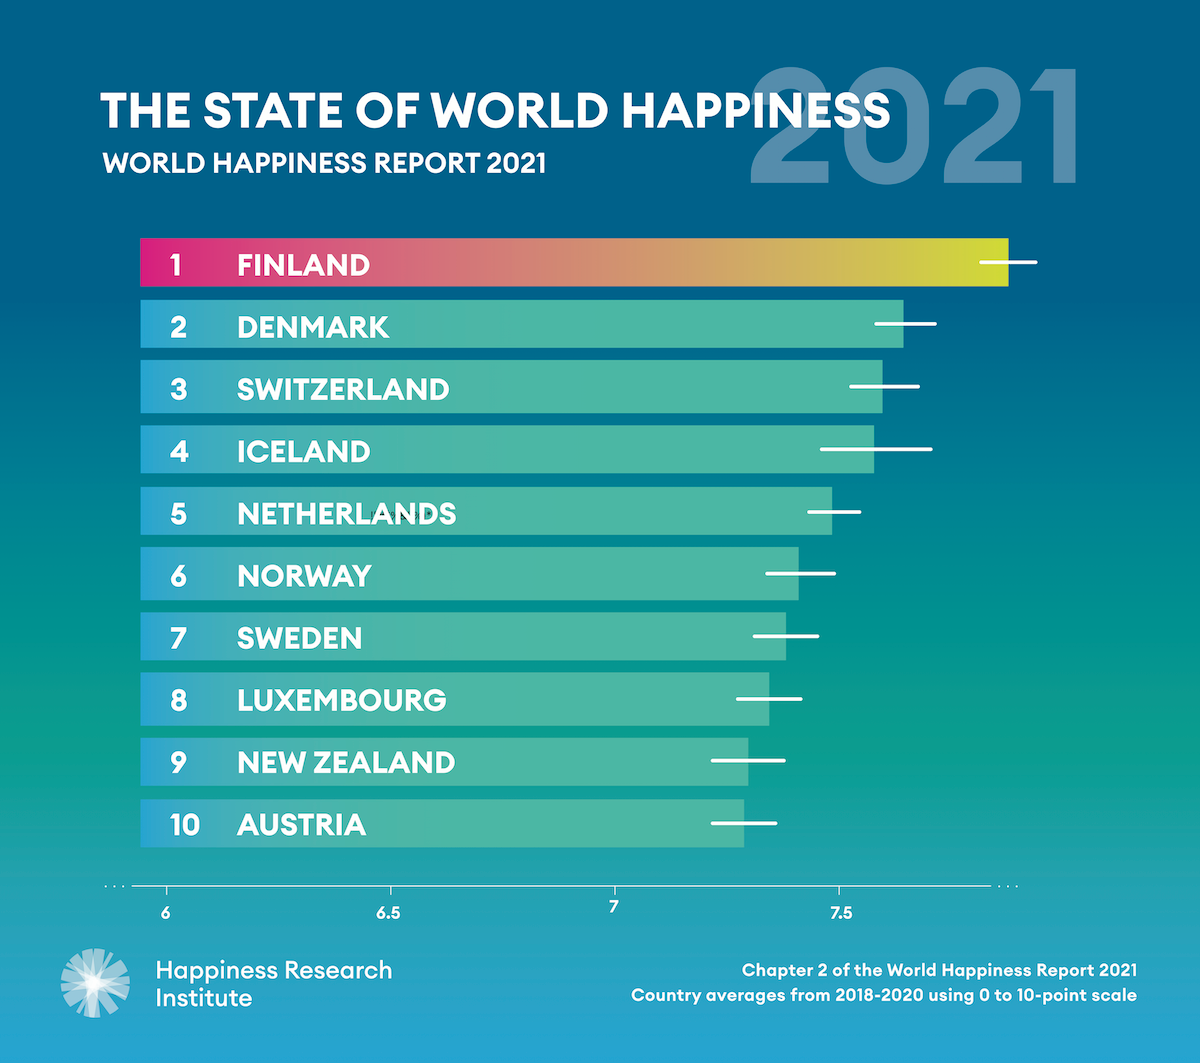 World Happiness Report 2021 top 10 countries